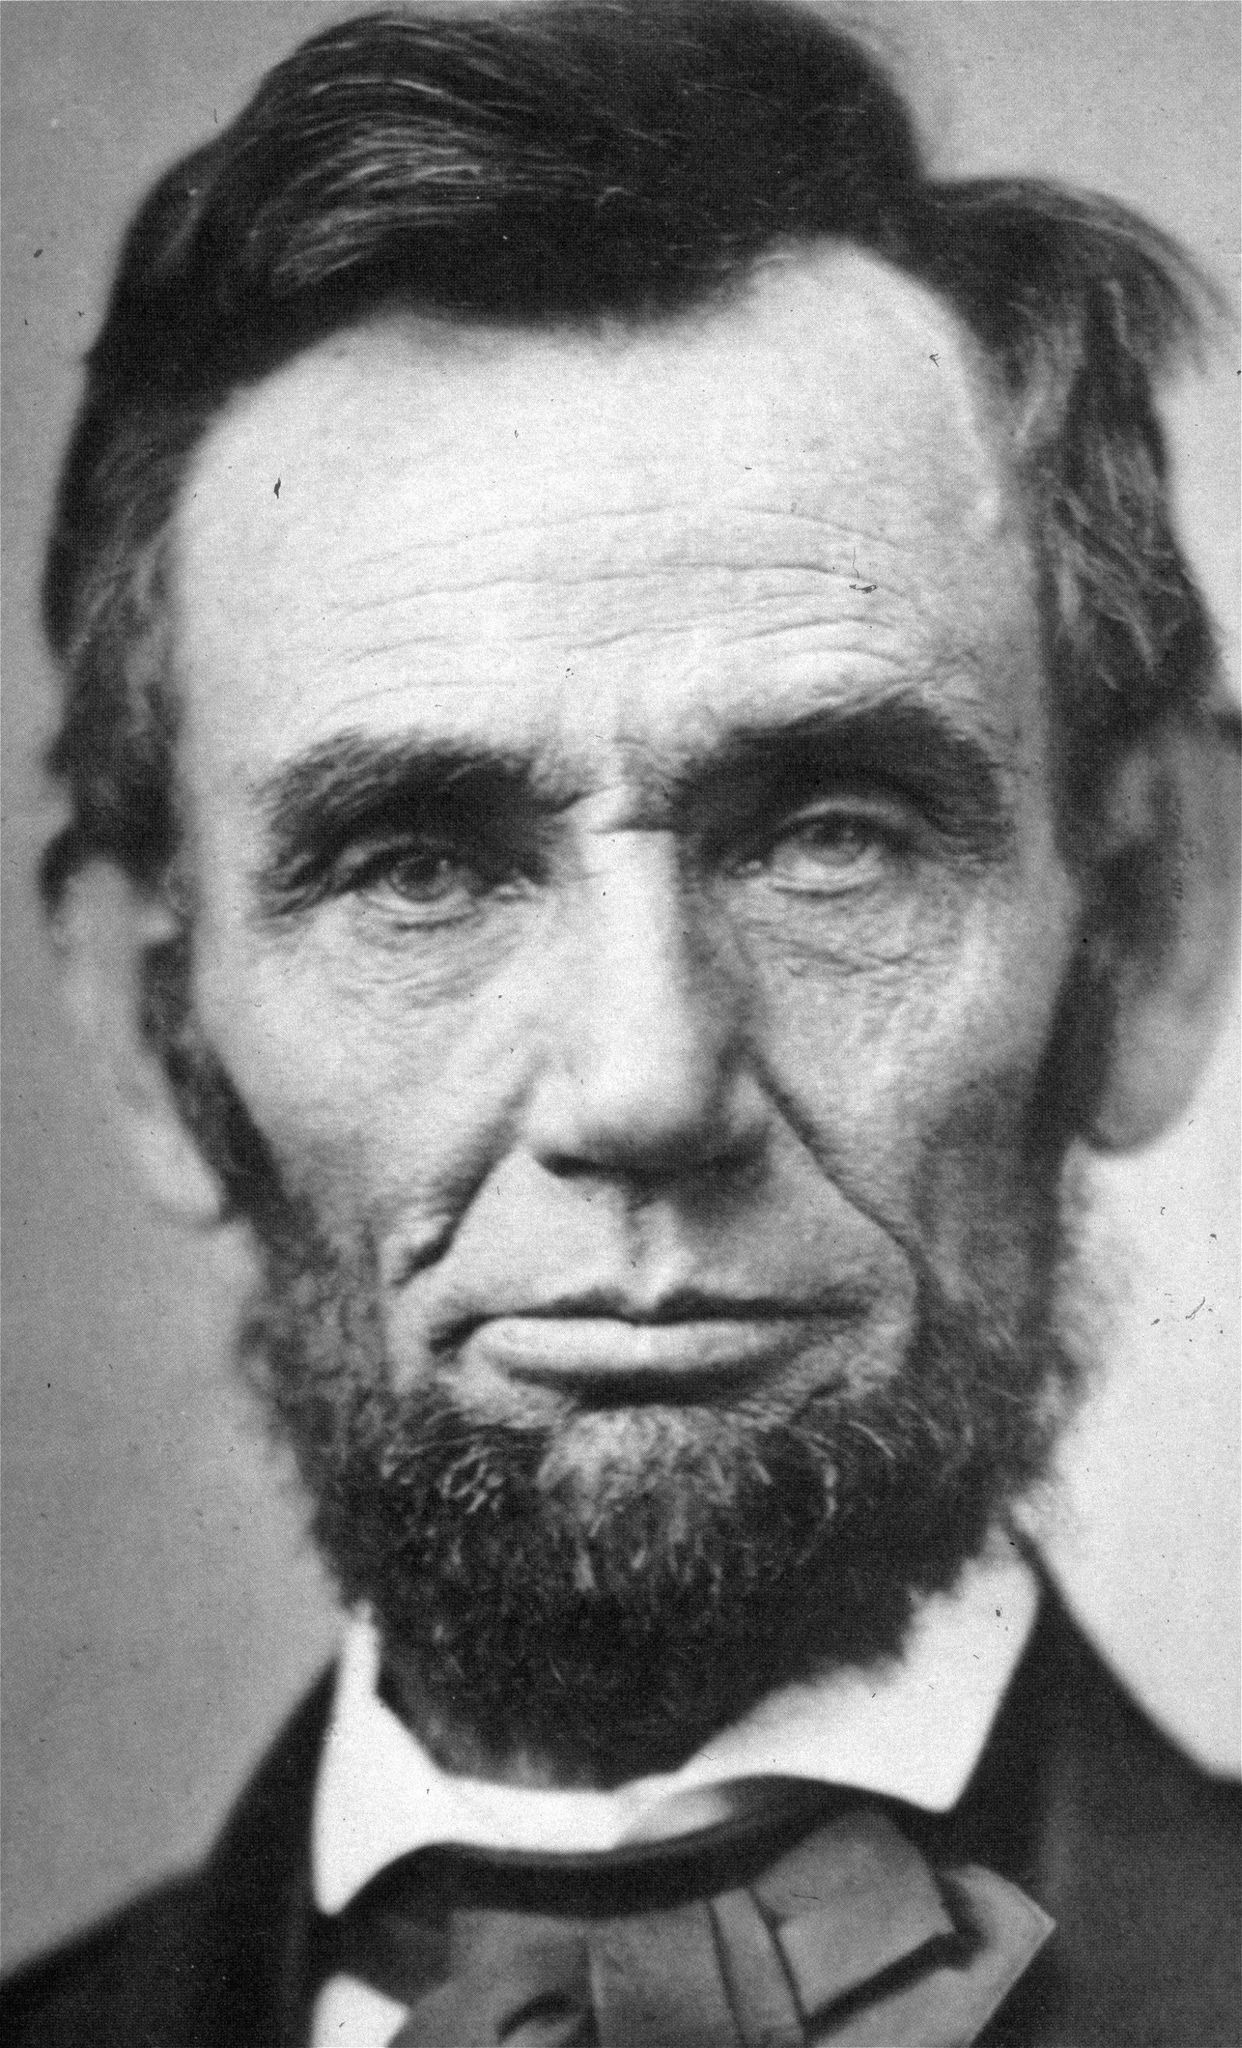 ** FILE ** President Abraham Lincoln is shown in this Nov. 8, 1863 file photo made available by the